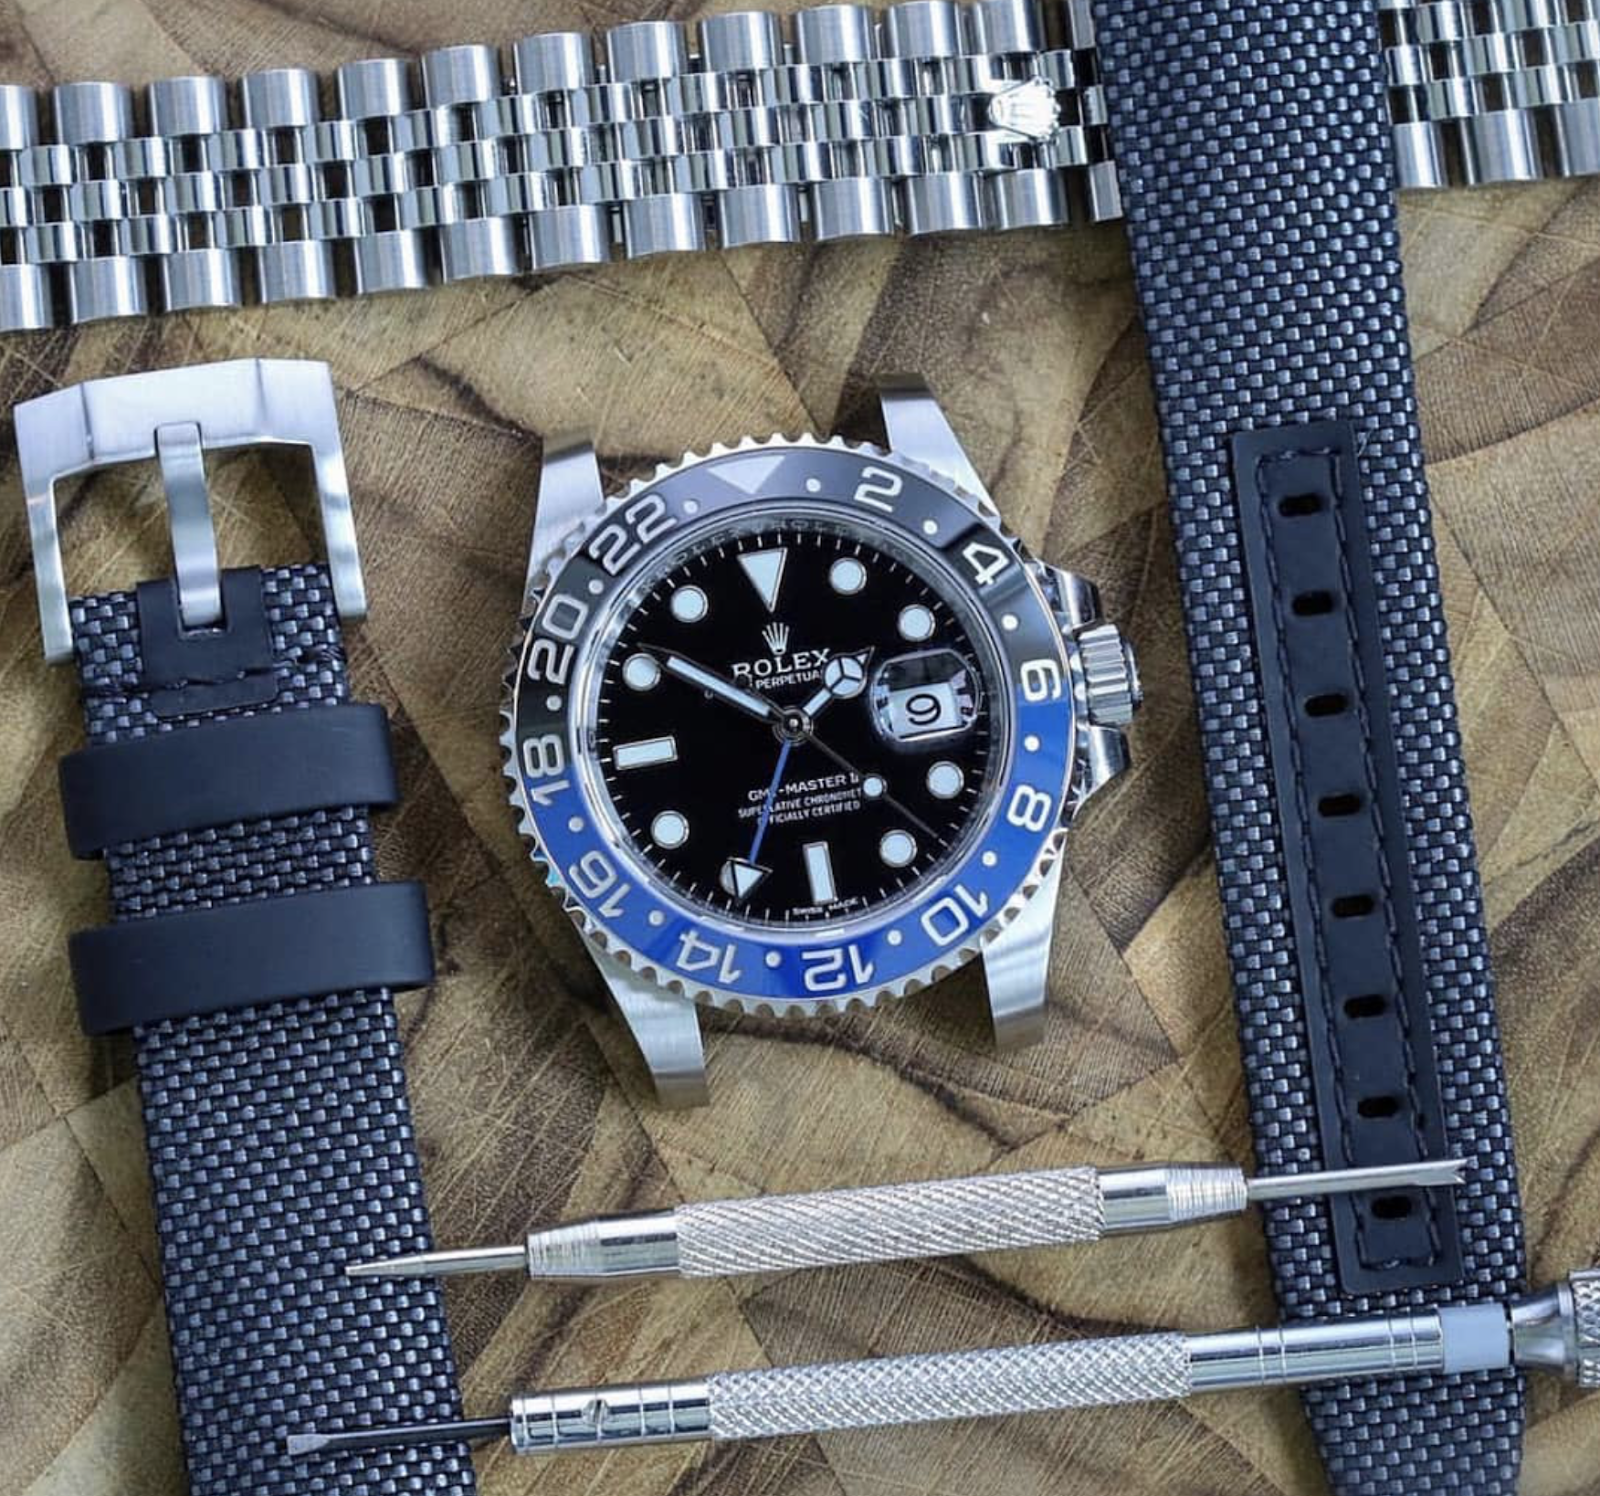 curved end nylon strap ready to install on a rolex gmt master II using tool kit